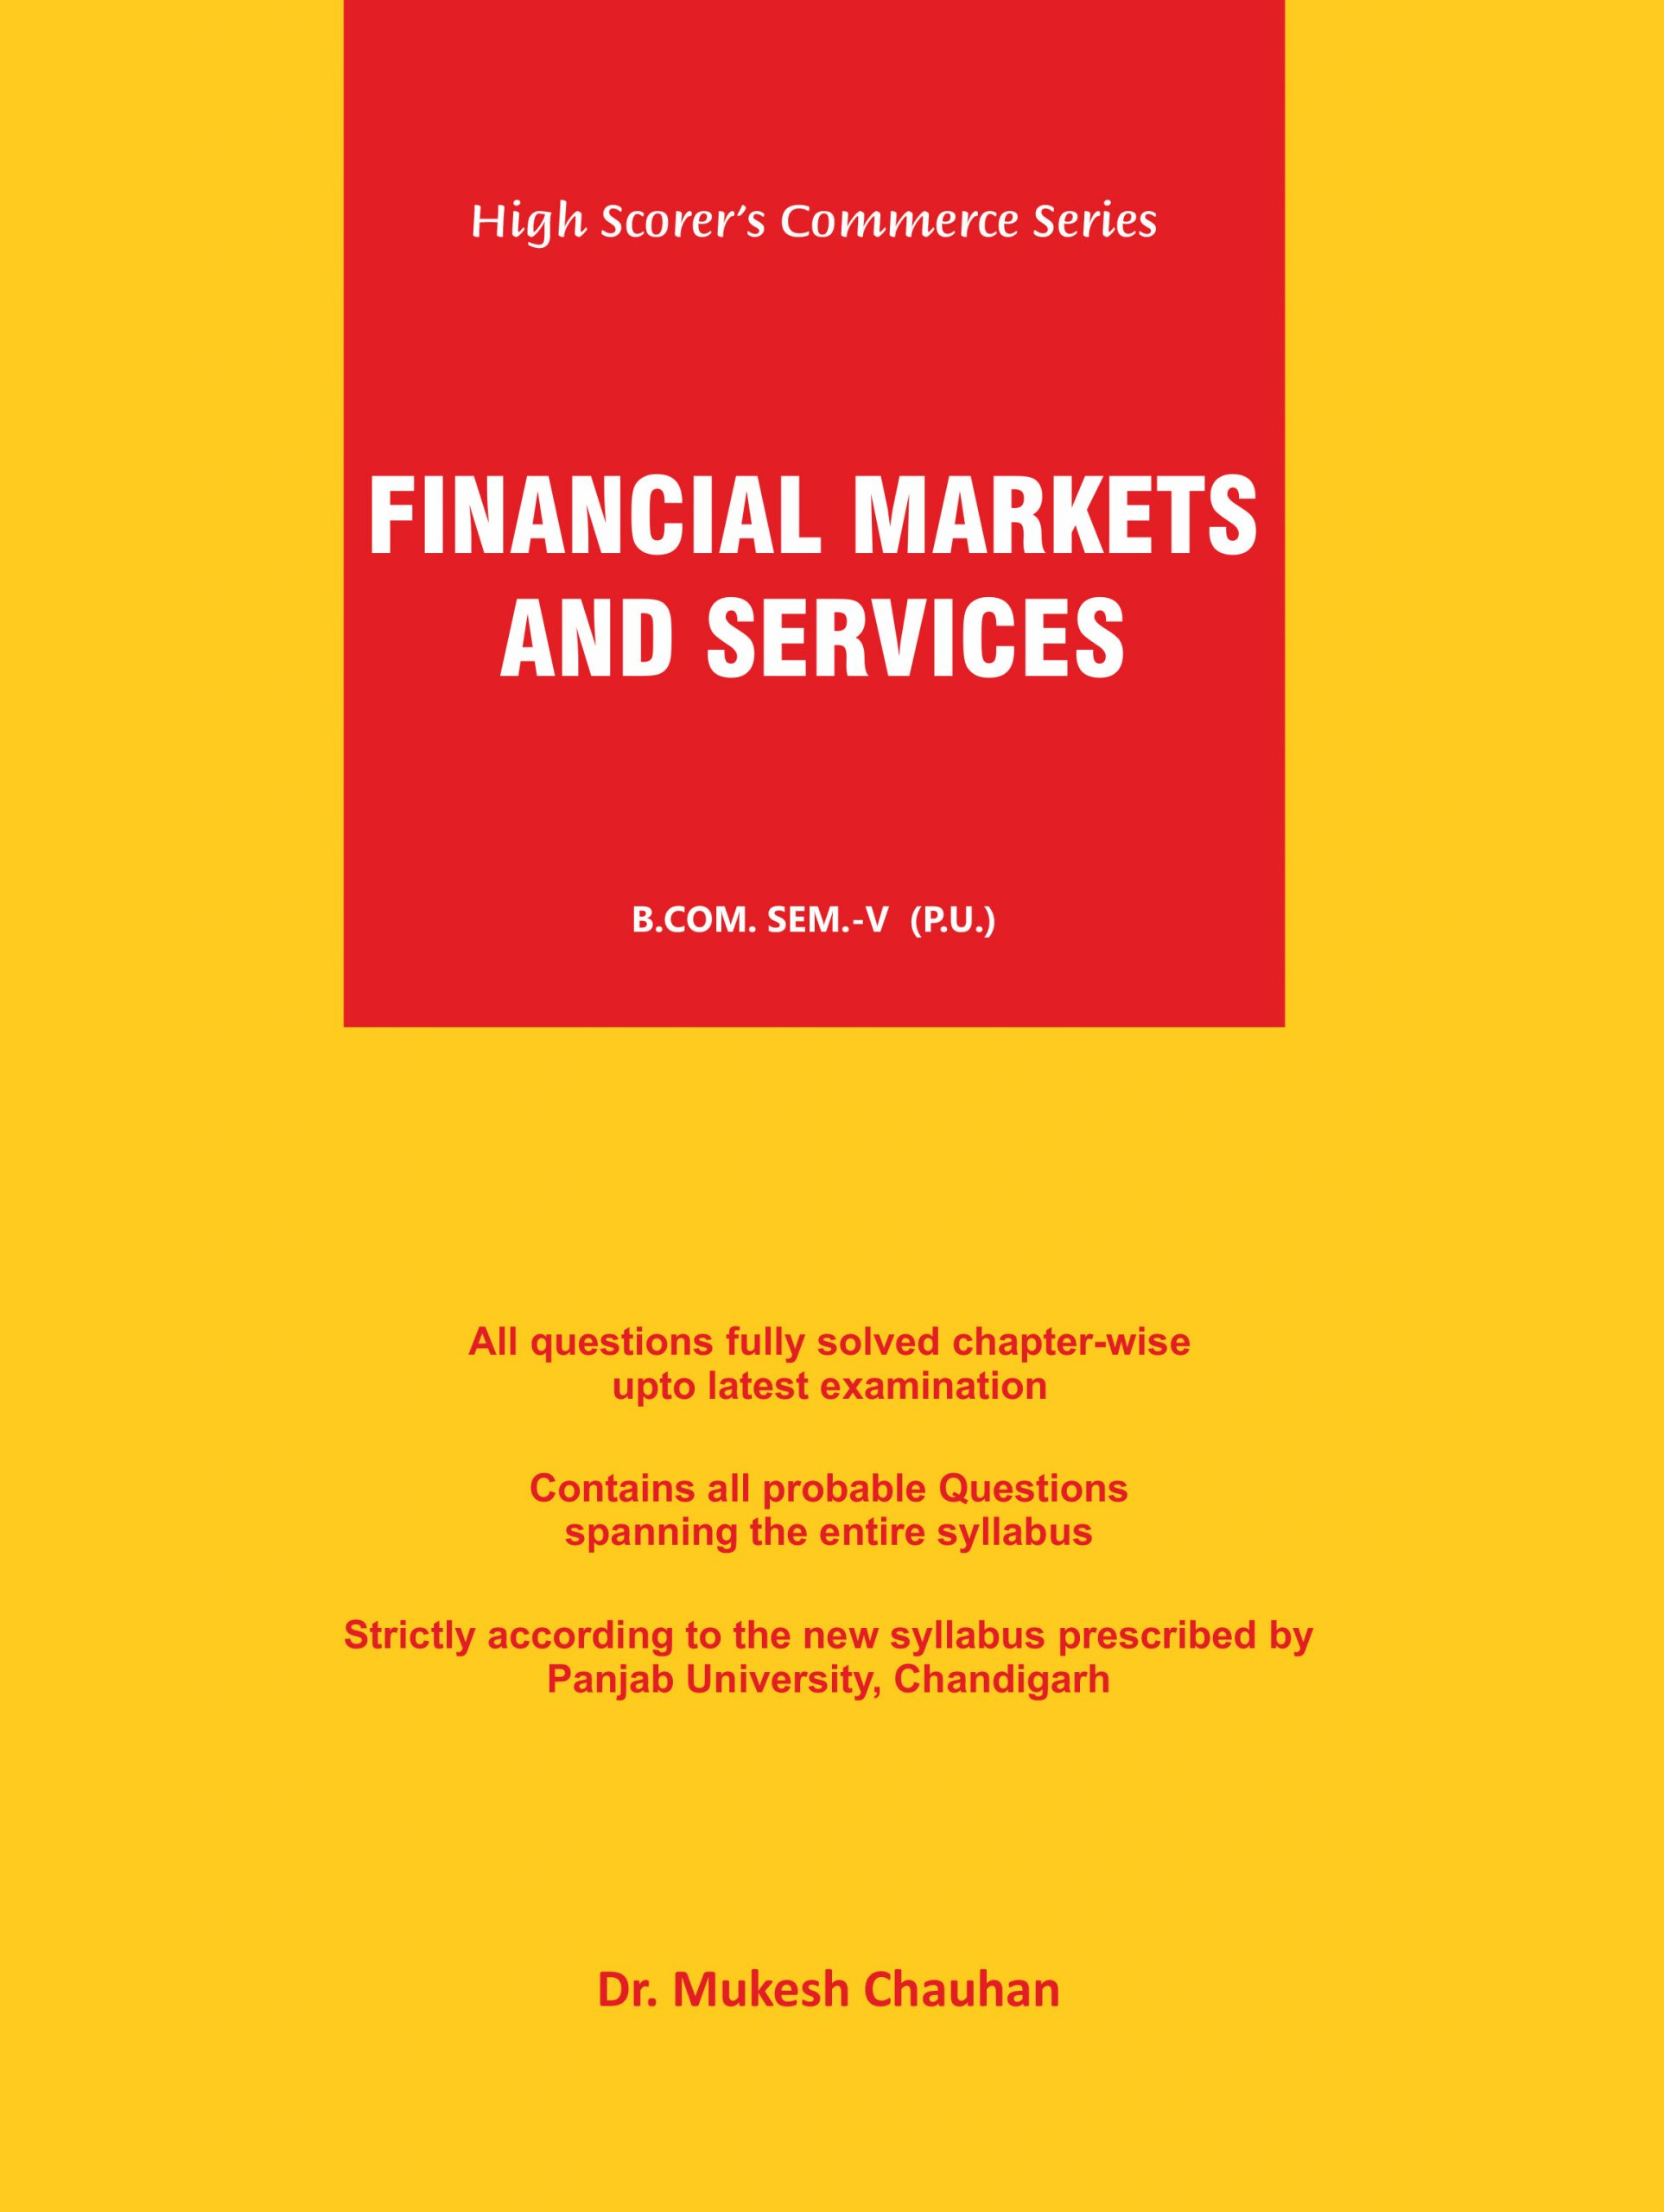 High Scorer's Commerce Series, Financial Markets & Services for B.Com. 5th Sem. (P.U.) by Dr. Mukesh Chauhan, Edition 2020